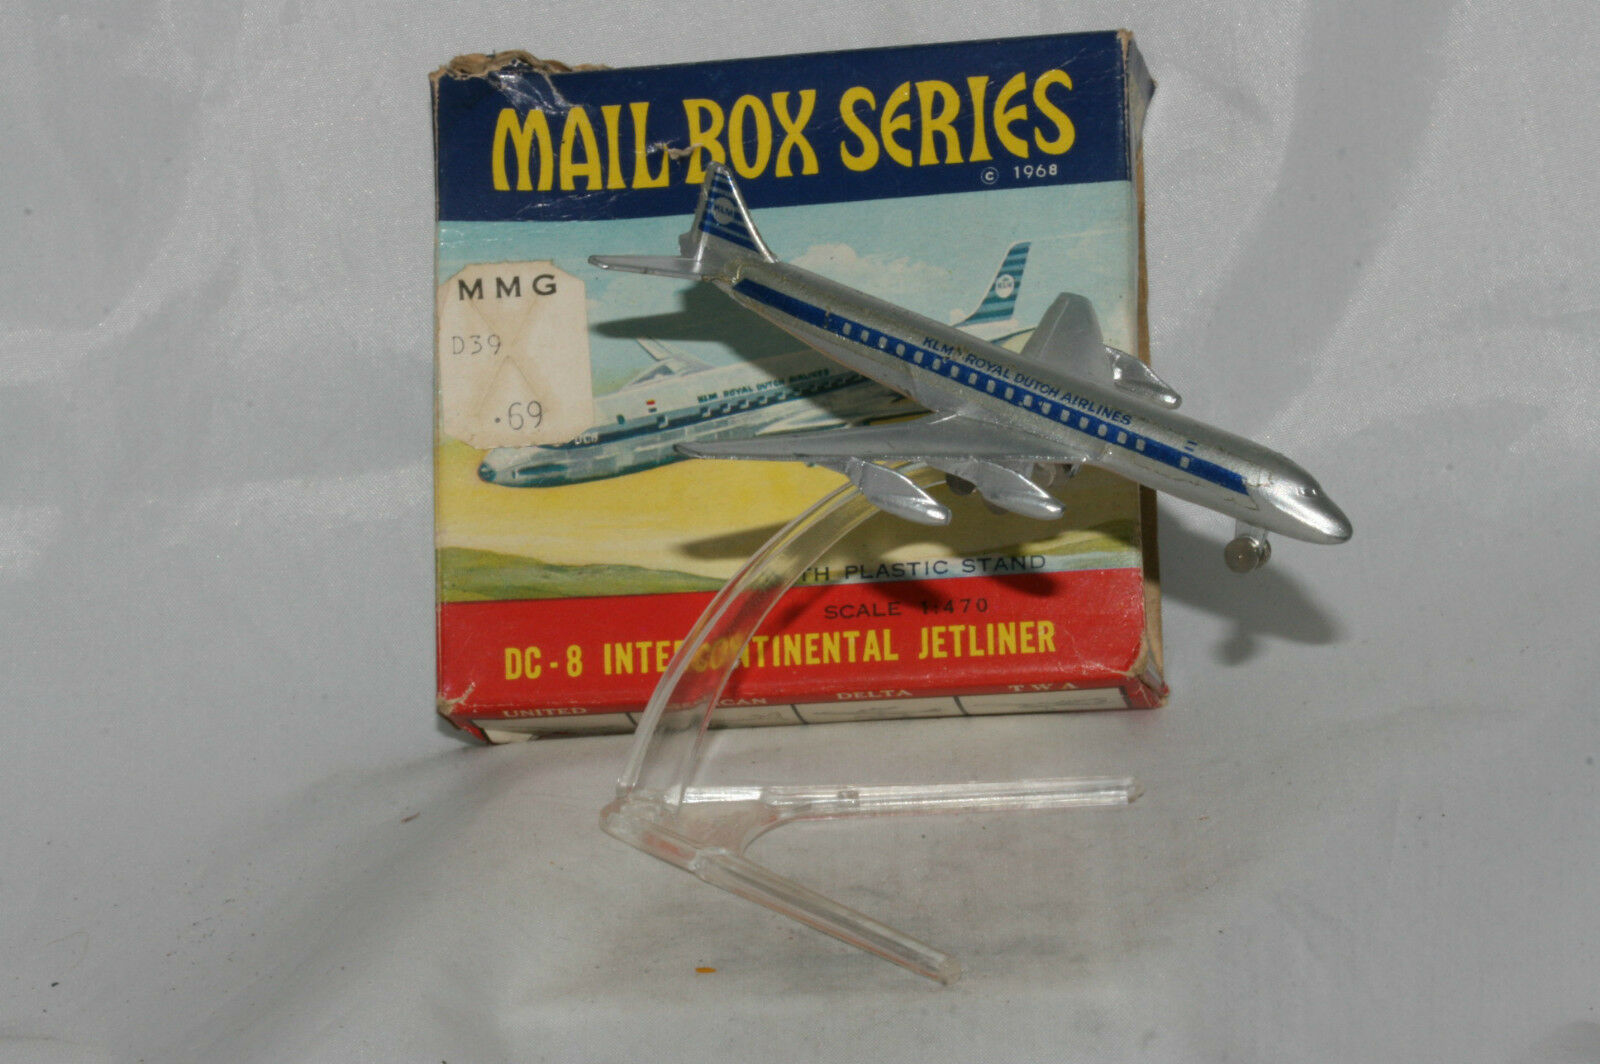 1960's Frankonia Mail Box Series KLM Royal Dutch Airlines DC-8 Jetliner, Boxed